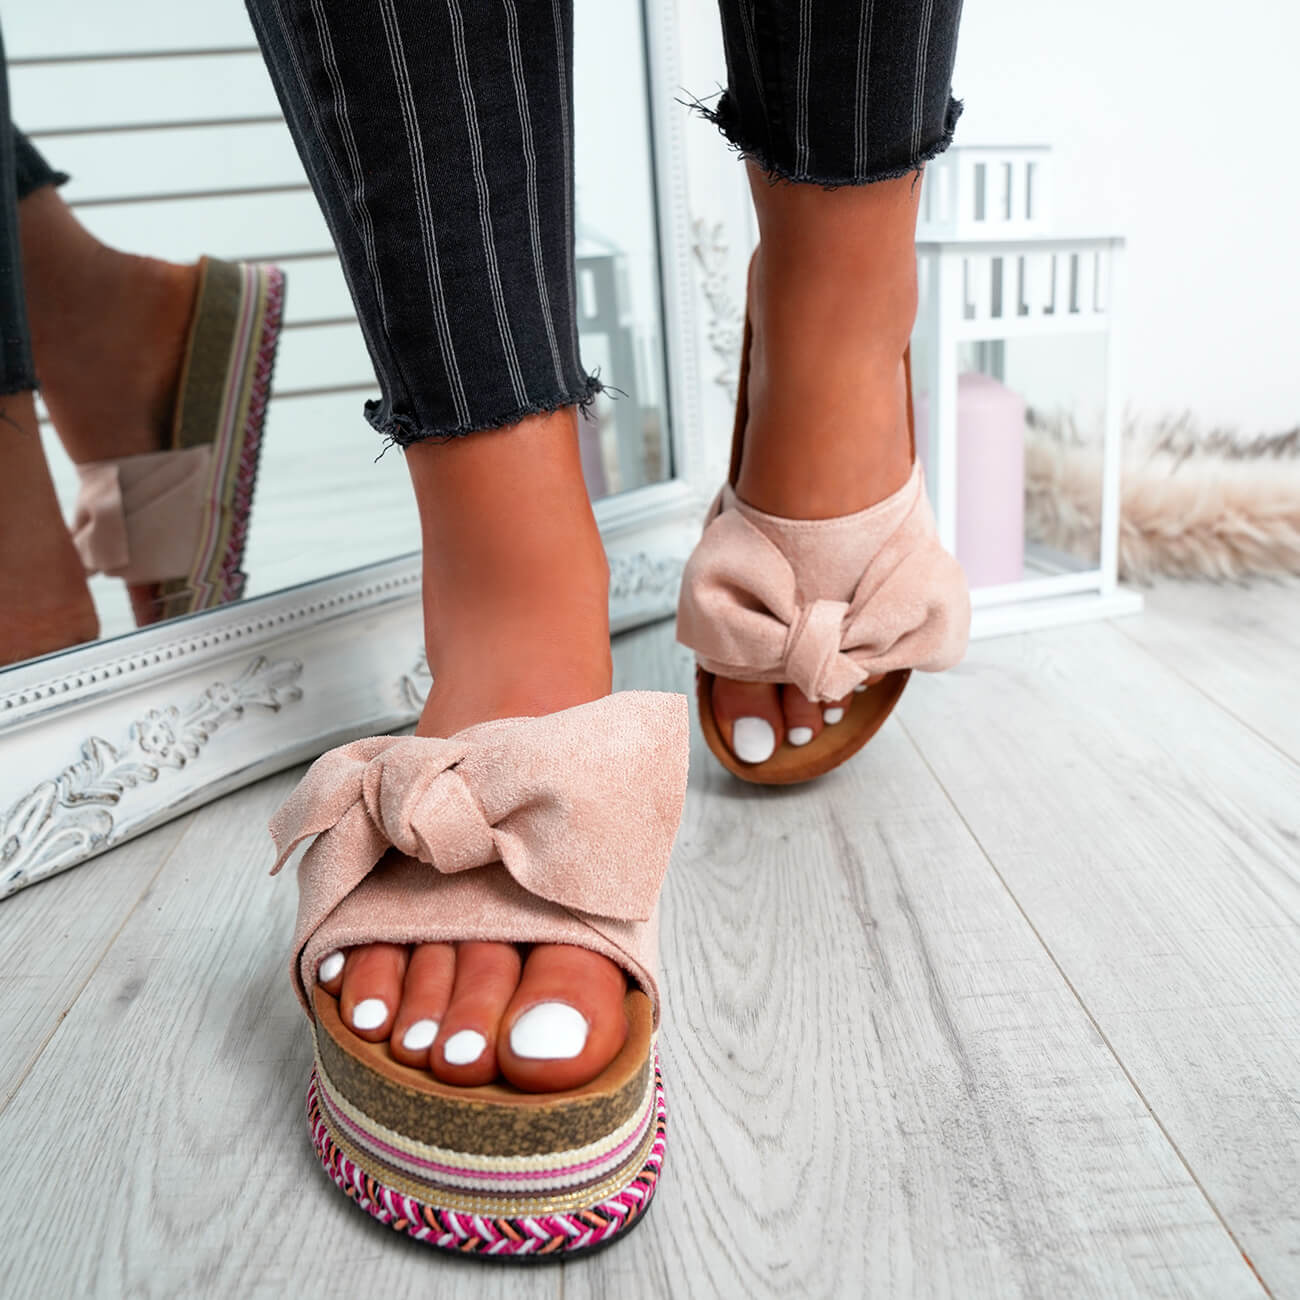 WOMENS-LADIES-BOW-SLIDERS-SLIP-ON-FLATFORMS-SUMMER-PARTY-SANDALS-SHOES-SIZE thumbnail 17